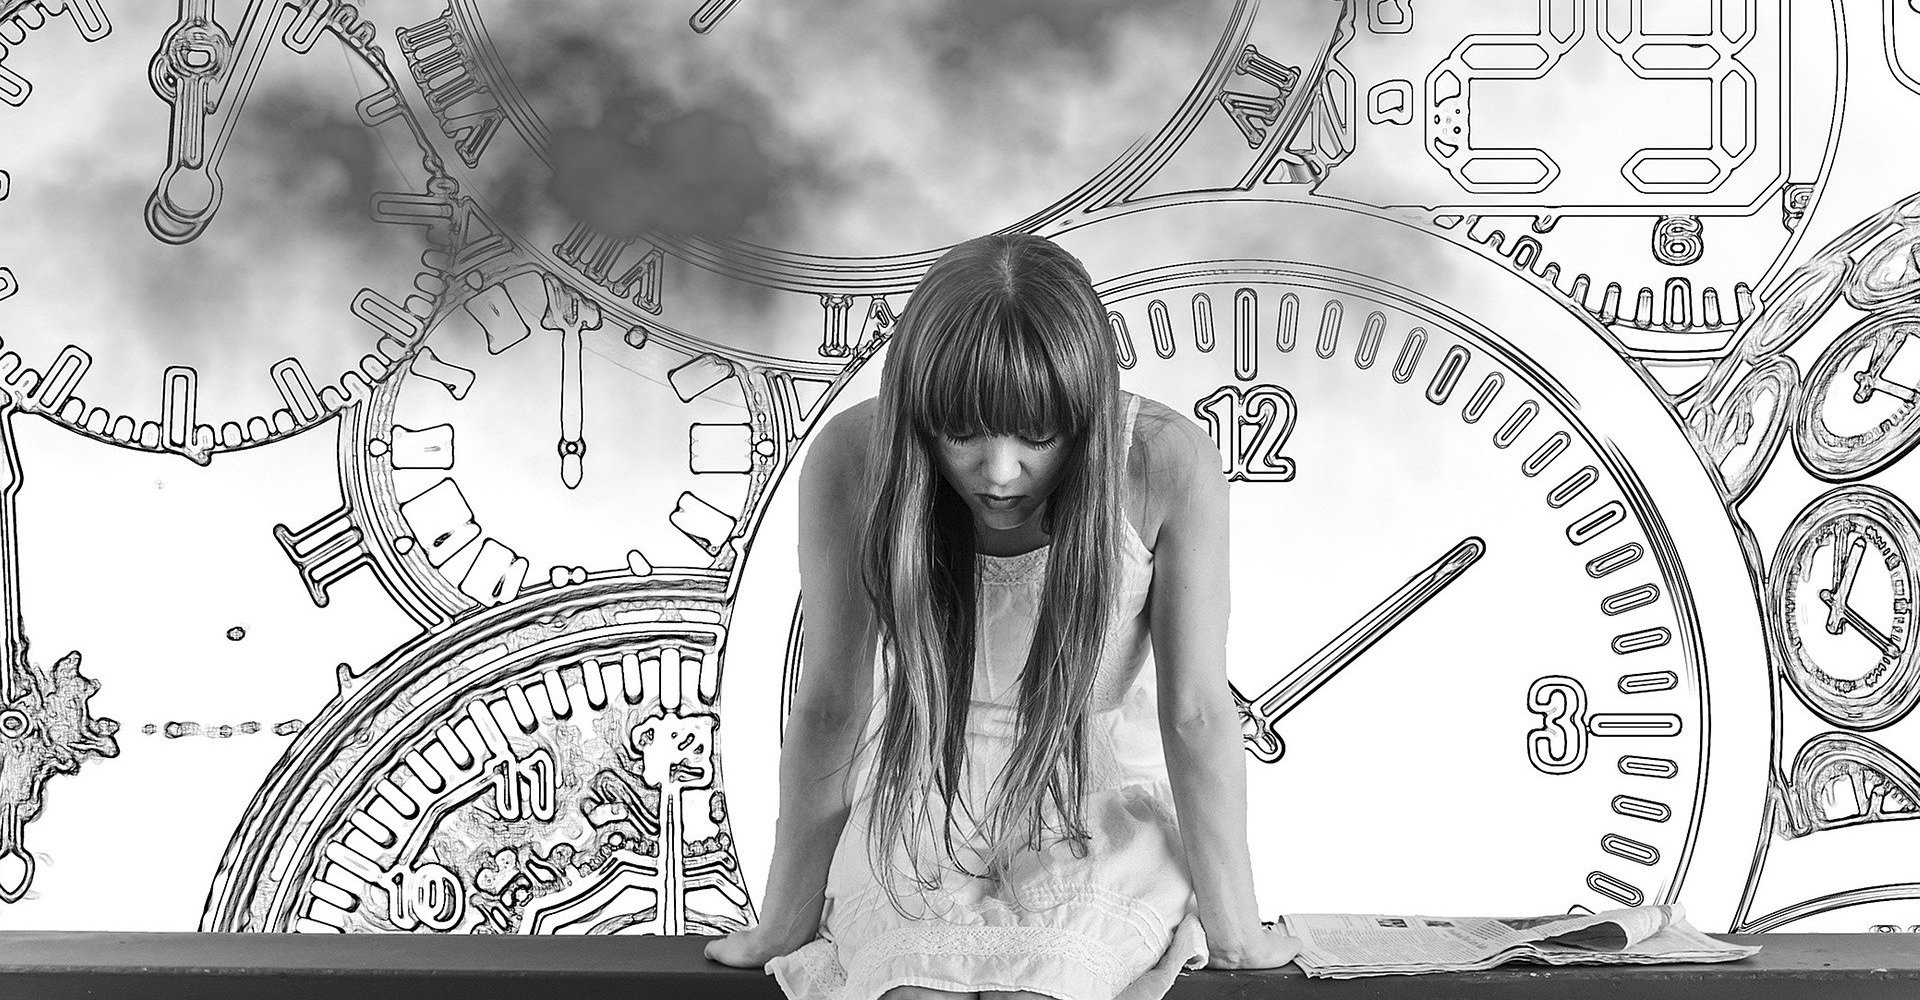 A woman looking at the floor with many clocks drawn behind her